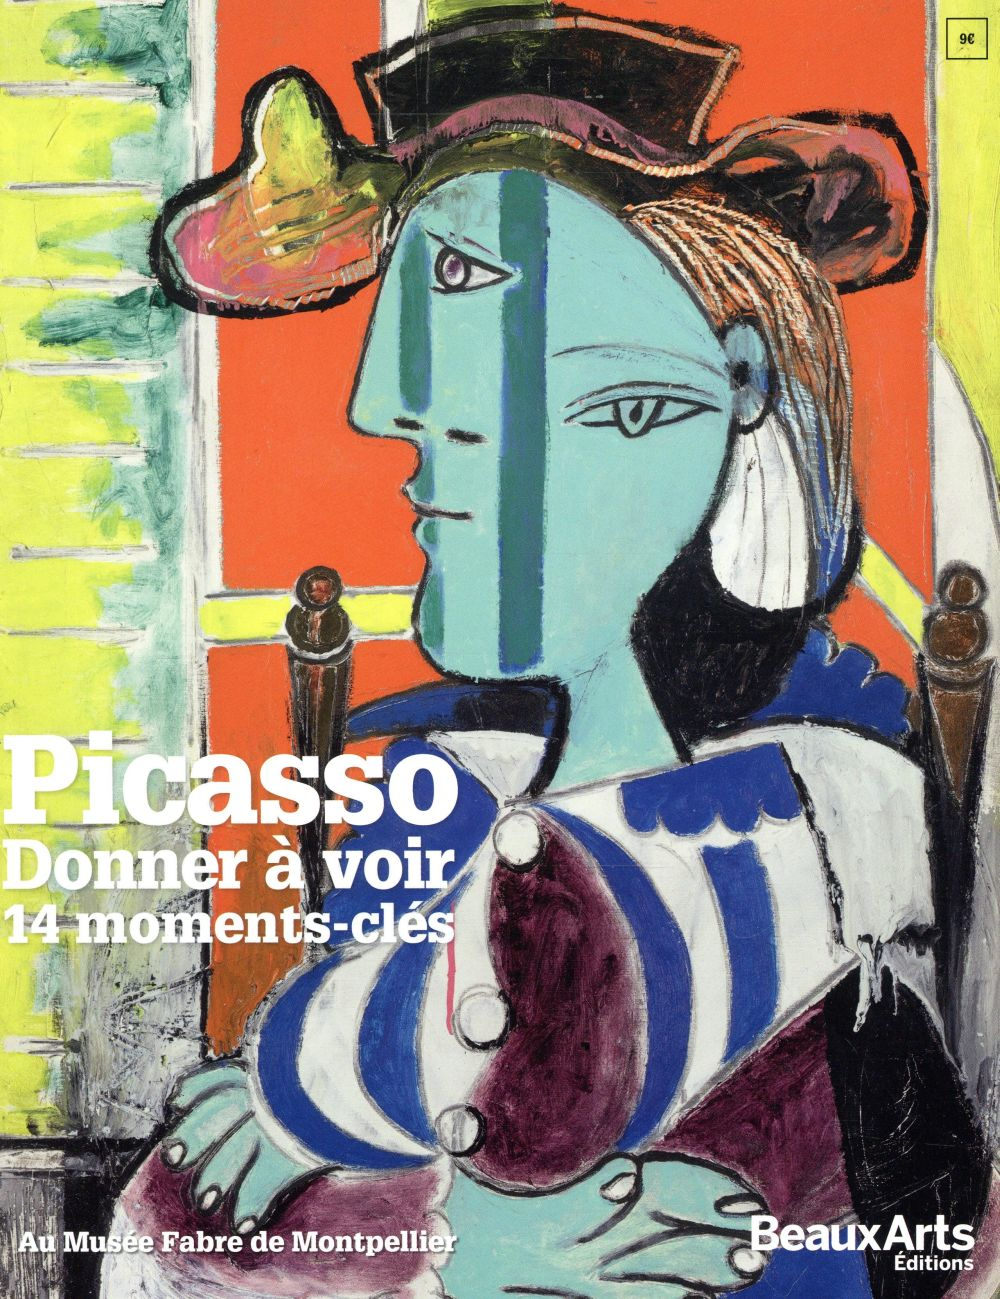 PICASSO - DONNER A VOIR 14 MOMENTS-CLES